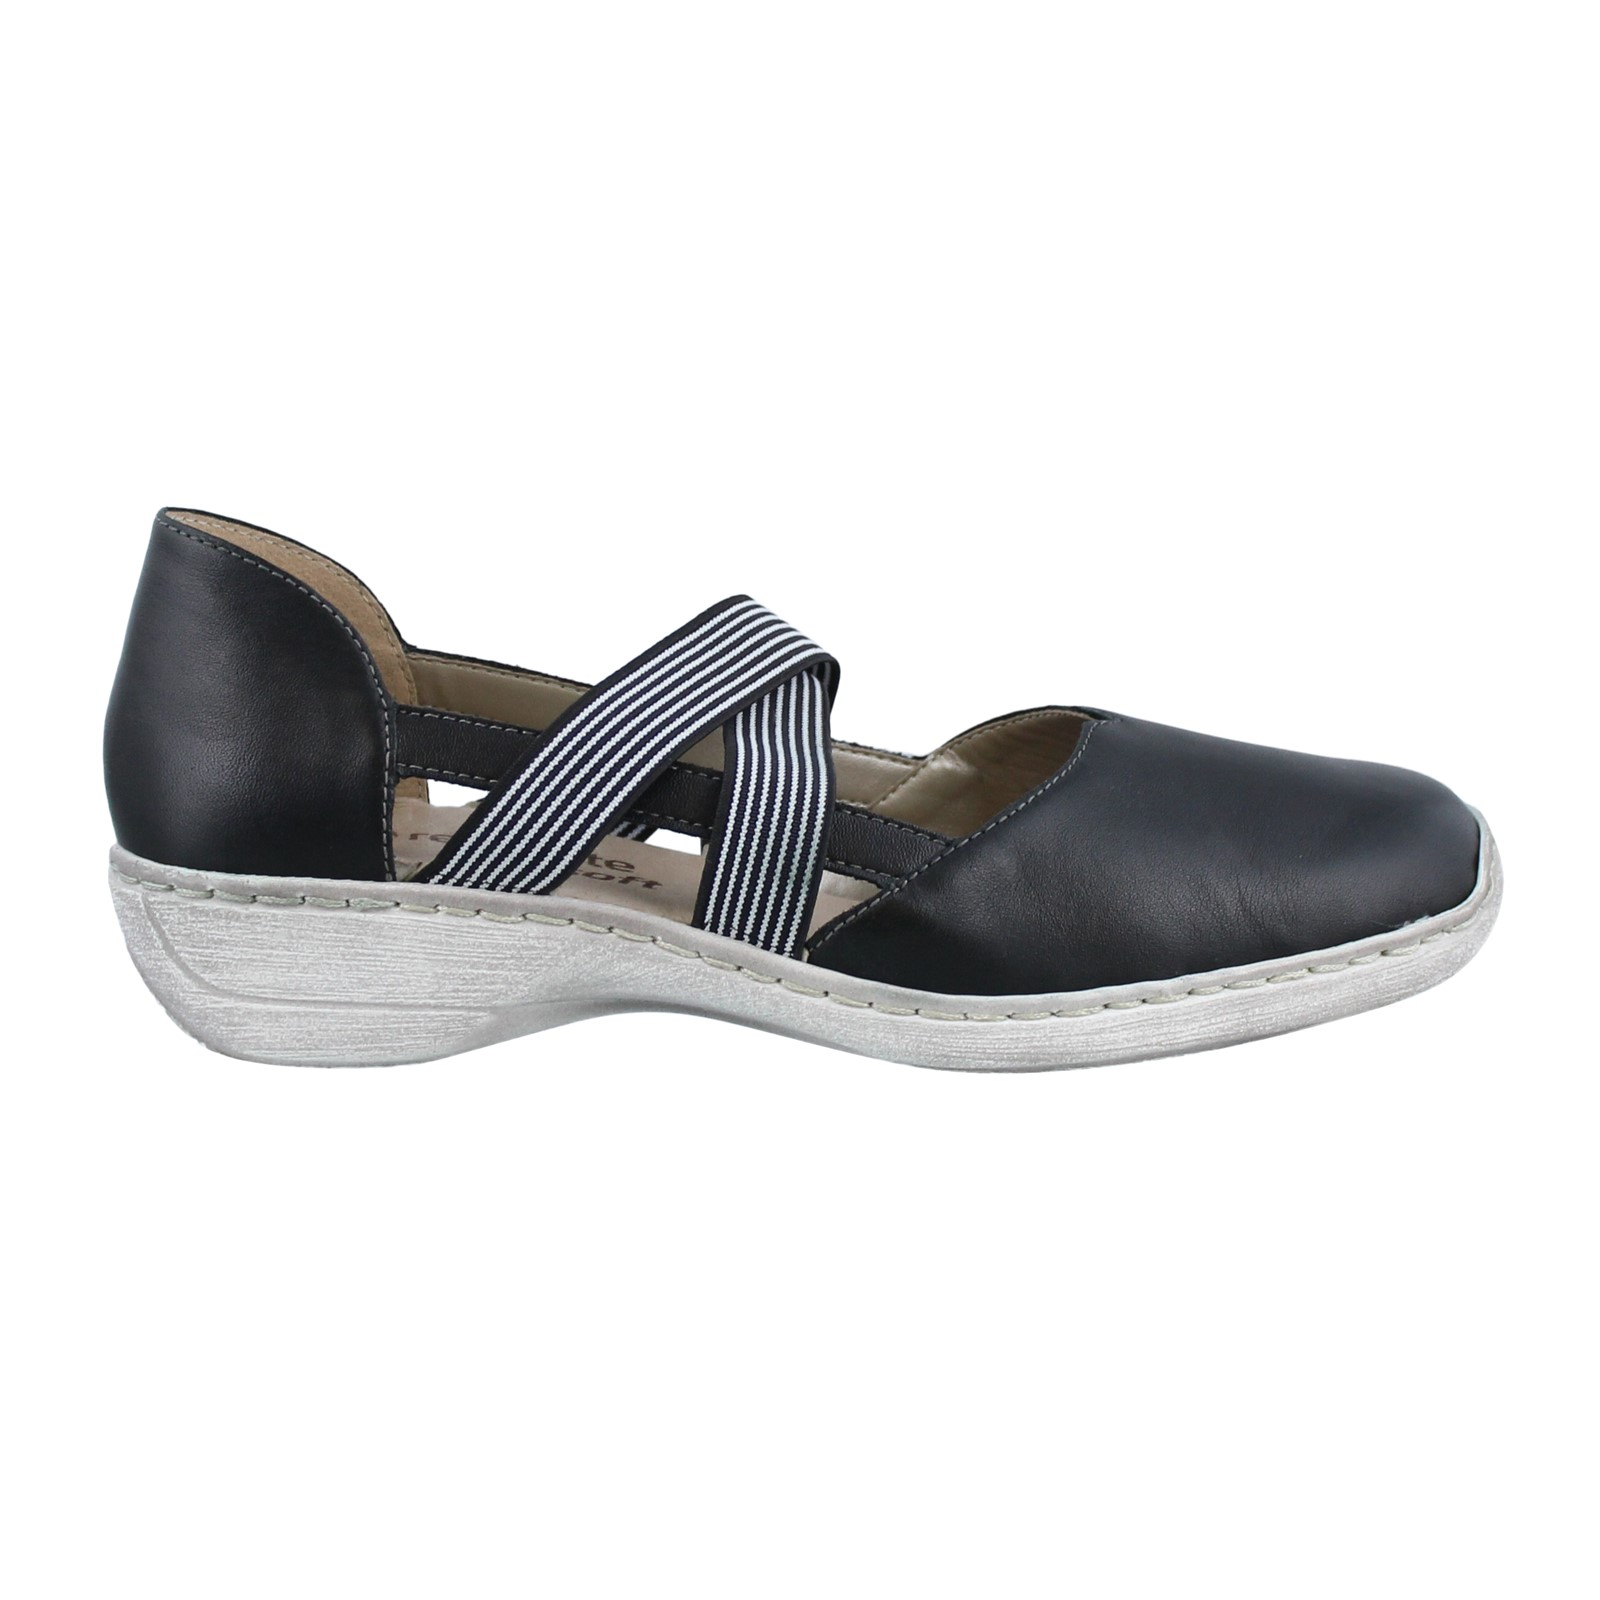 Women's Remonte, D1647 Slip on Shoes